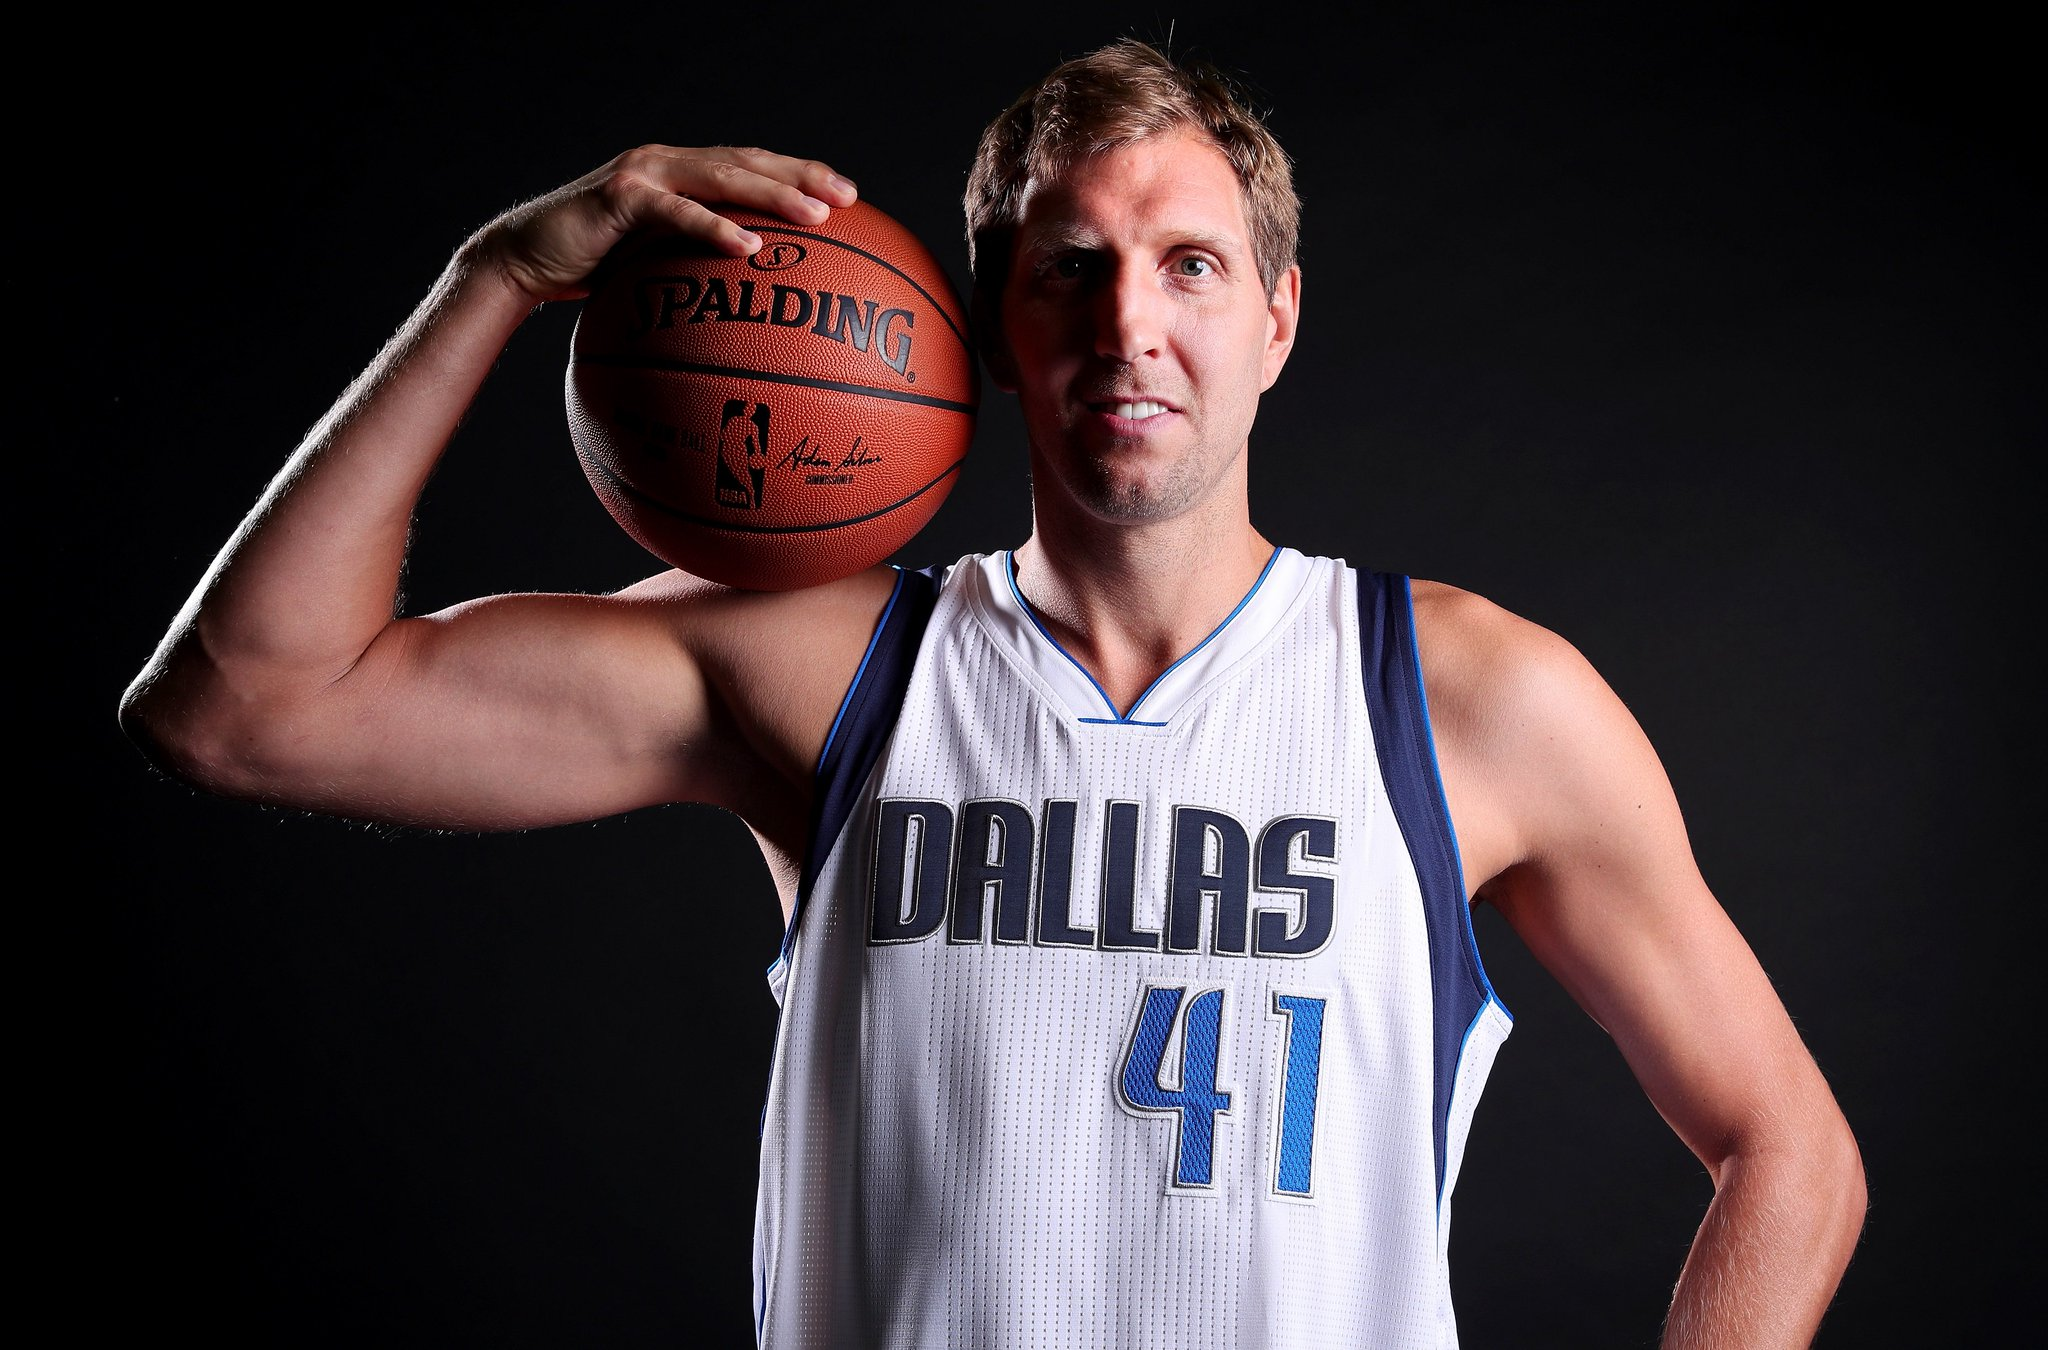 Join us in wishing @swish41 of the @dallasmavs a HAPPY 39th BIRTHDAY! #NBABDAY #MFFL https://t.co/9BmrHnbr25